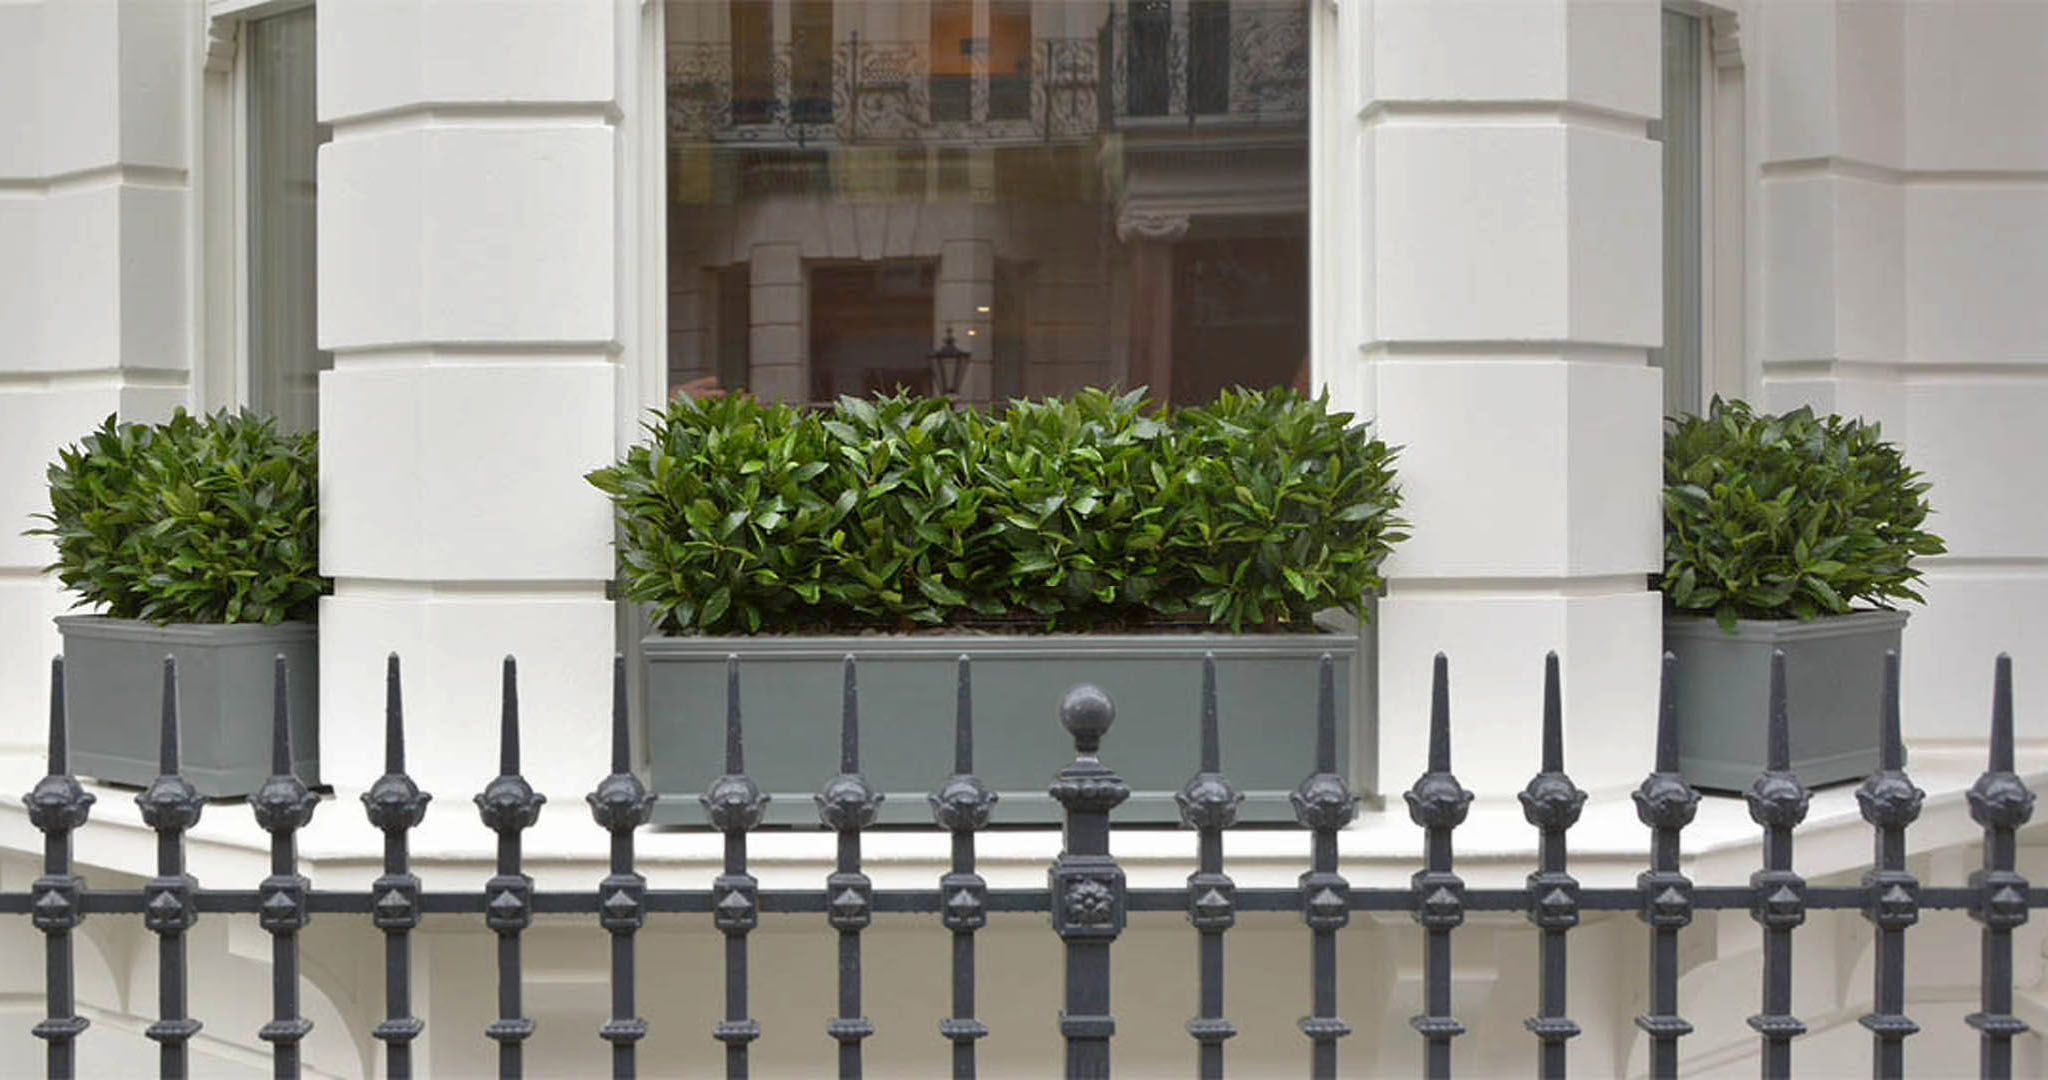 488 fake landscapes soft bay hedges in clients window boxes